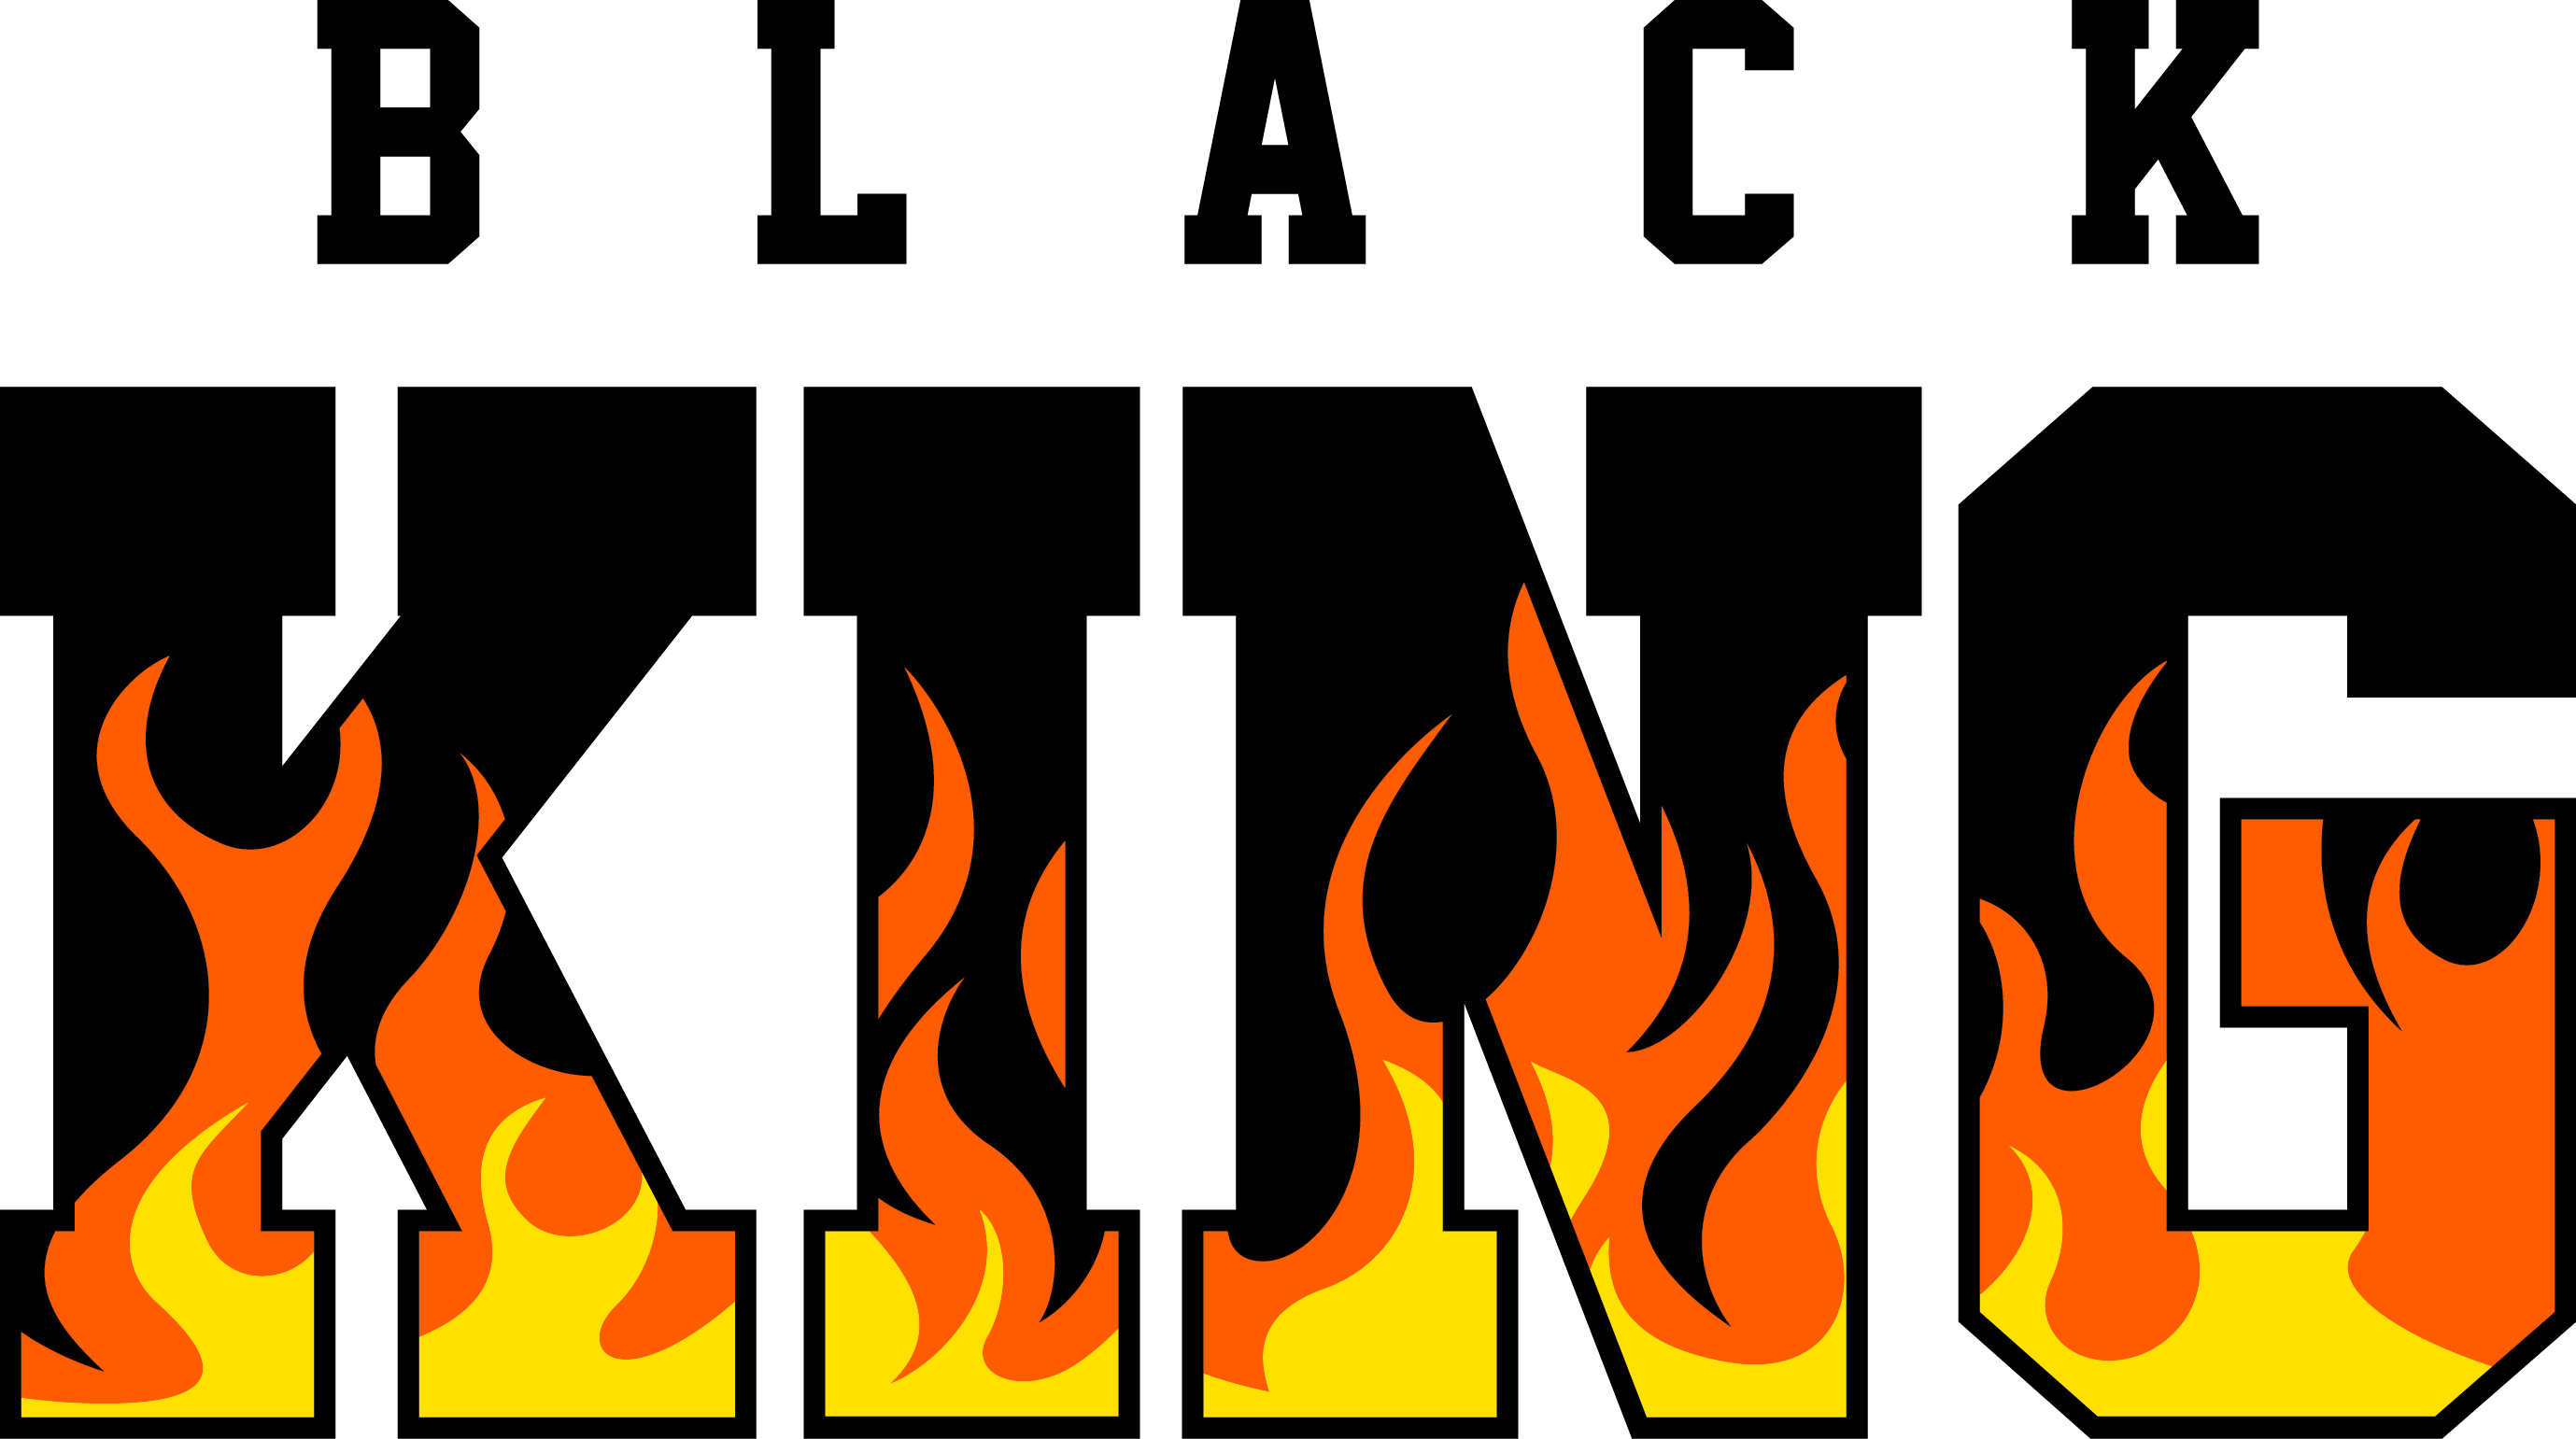 Black king flames